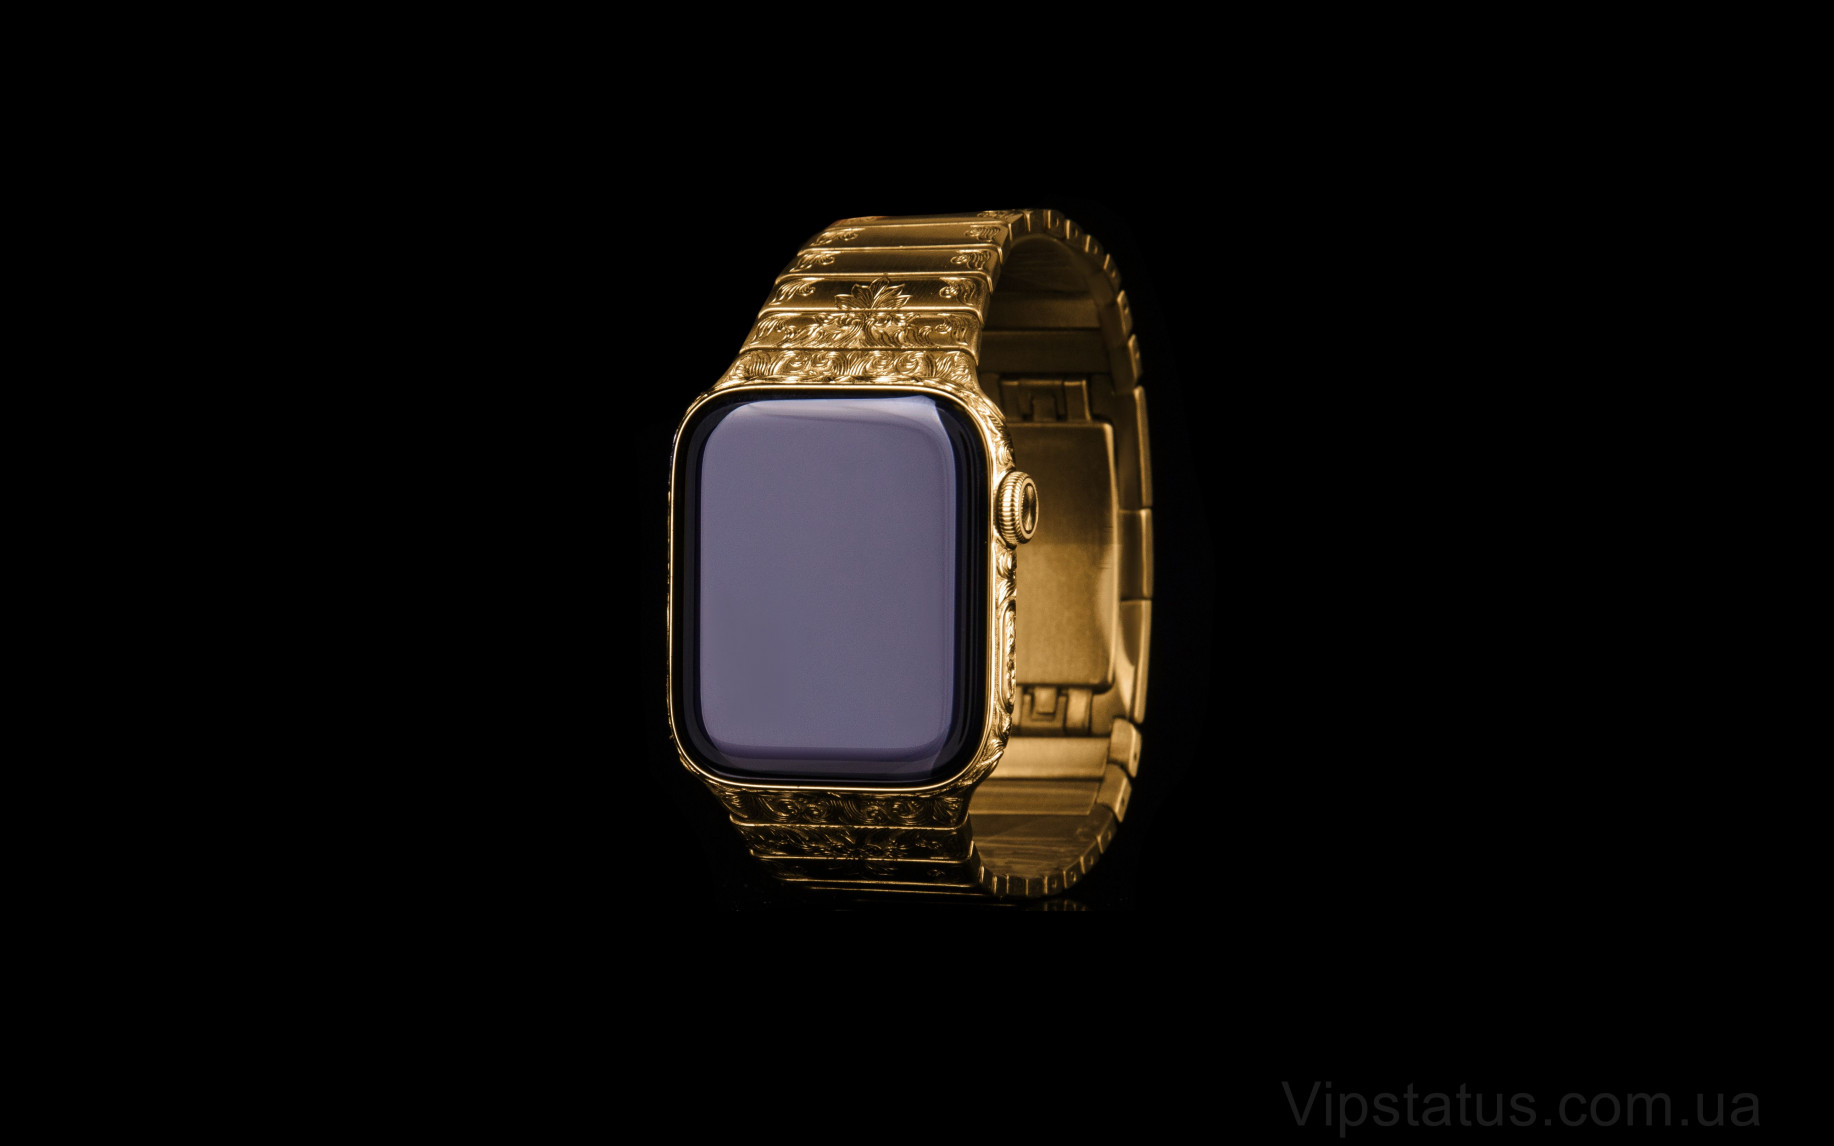 Elite Gold Star Apple Watch 5 Gold Star Apple Watch 5 image 1